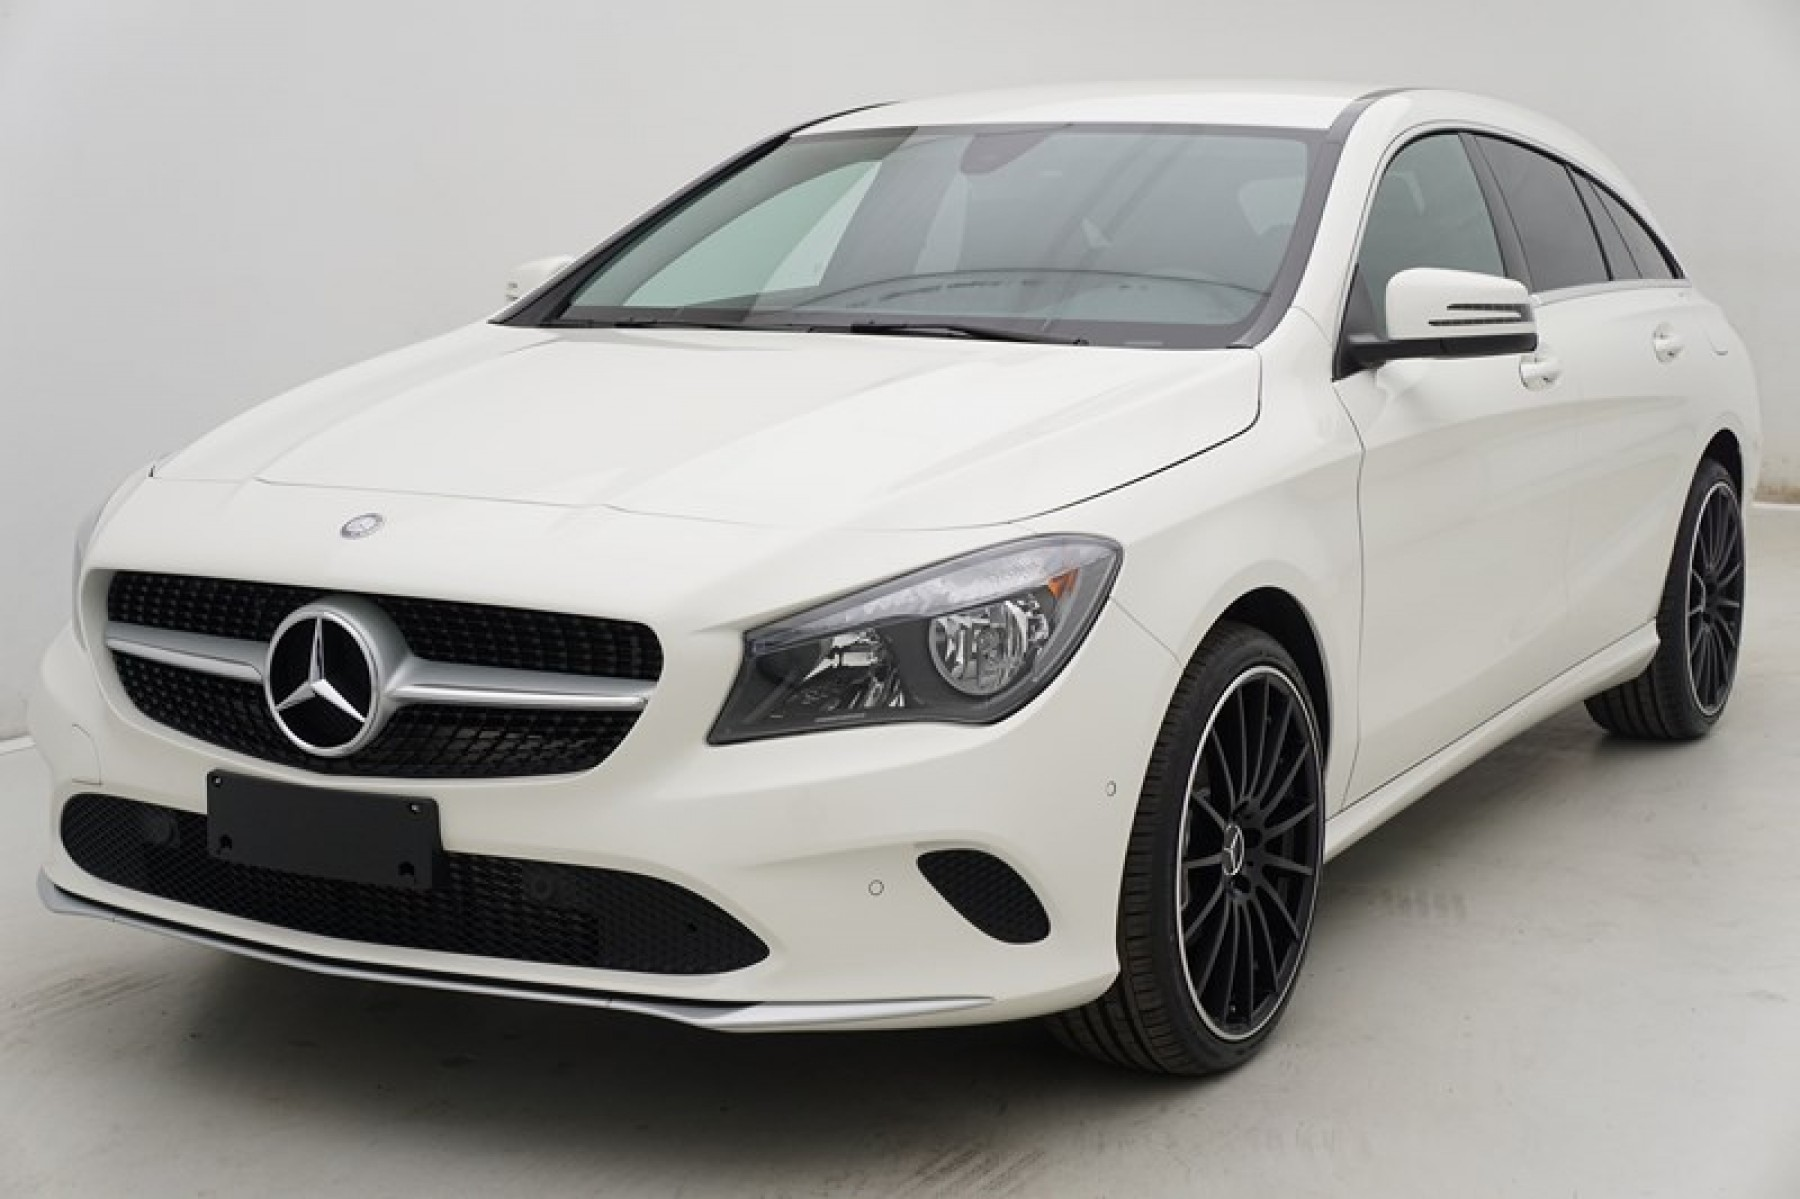 mercedes cla 200 cdi 7g dct shooting brake gps alu19 auto wise. Black Bedroom Furniture Sets. Home Design Ideas